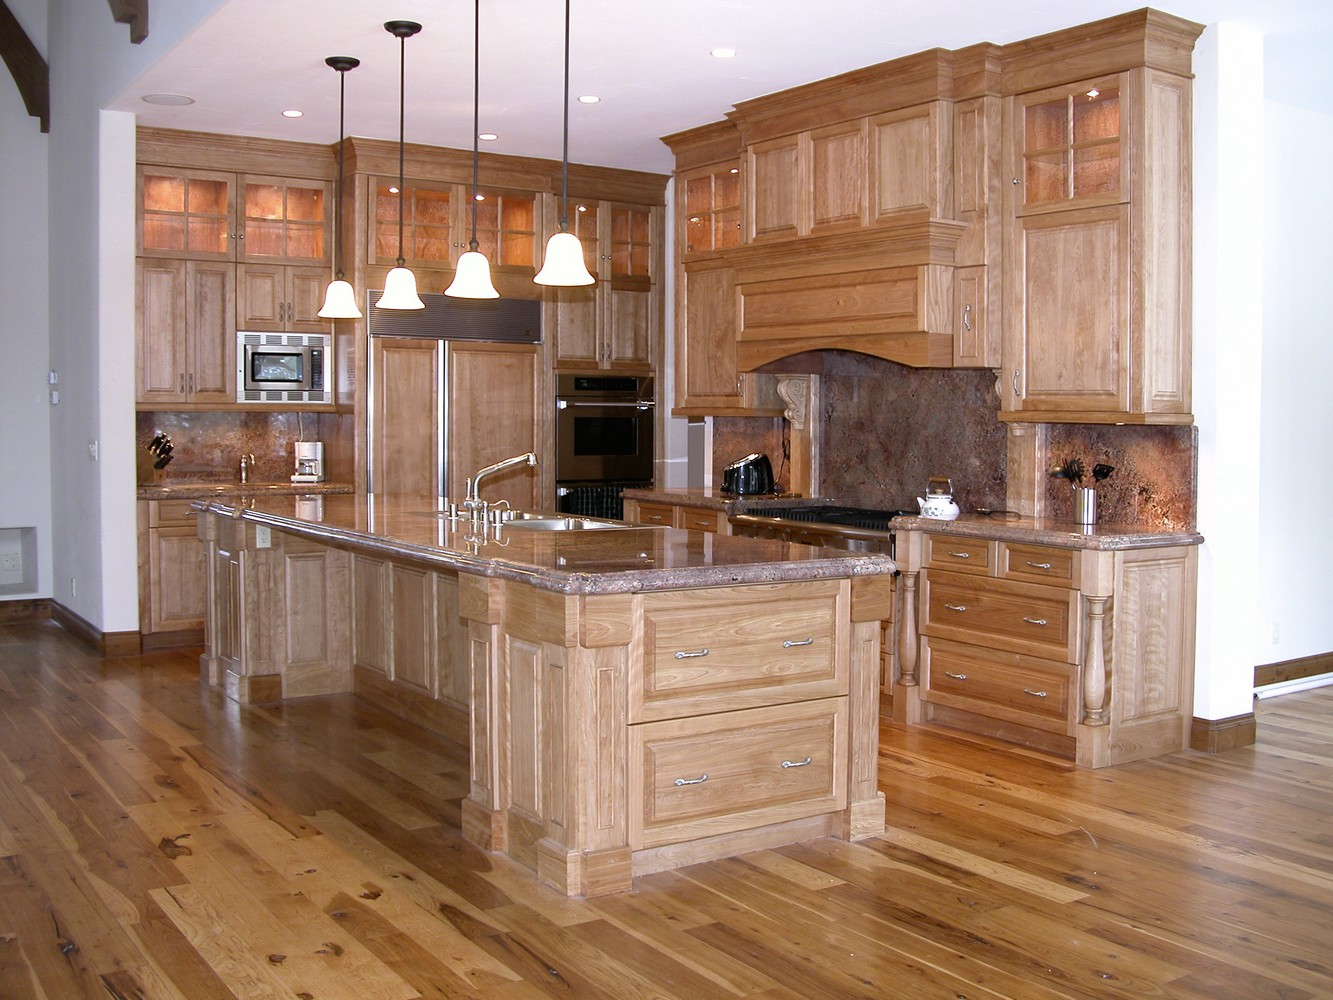 Custom kitchen islands appealing kitchen island for Custom kitchen design